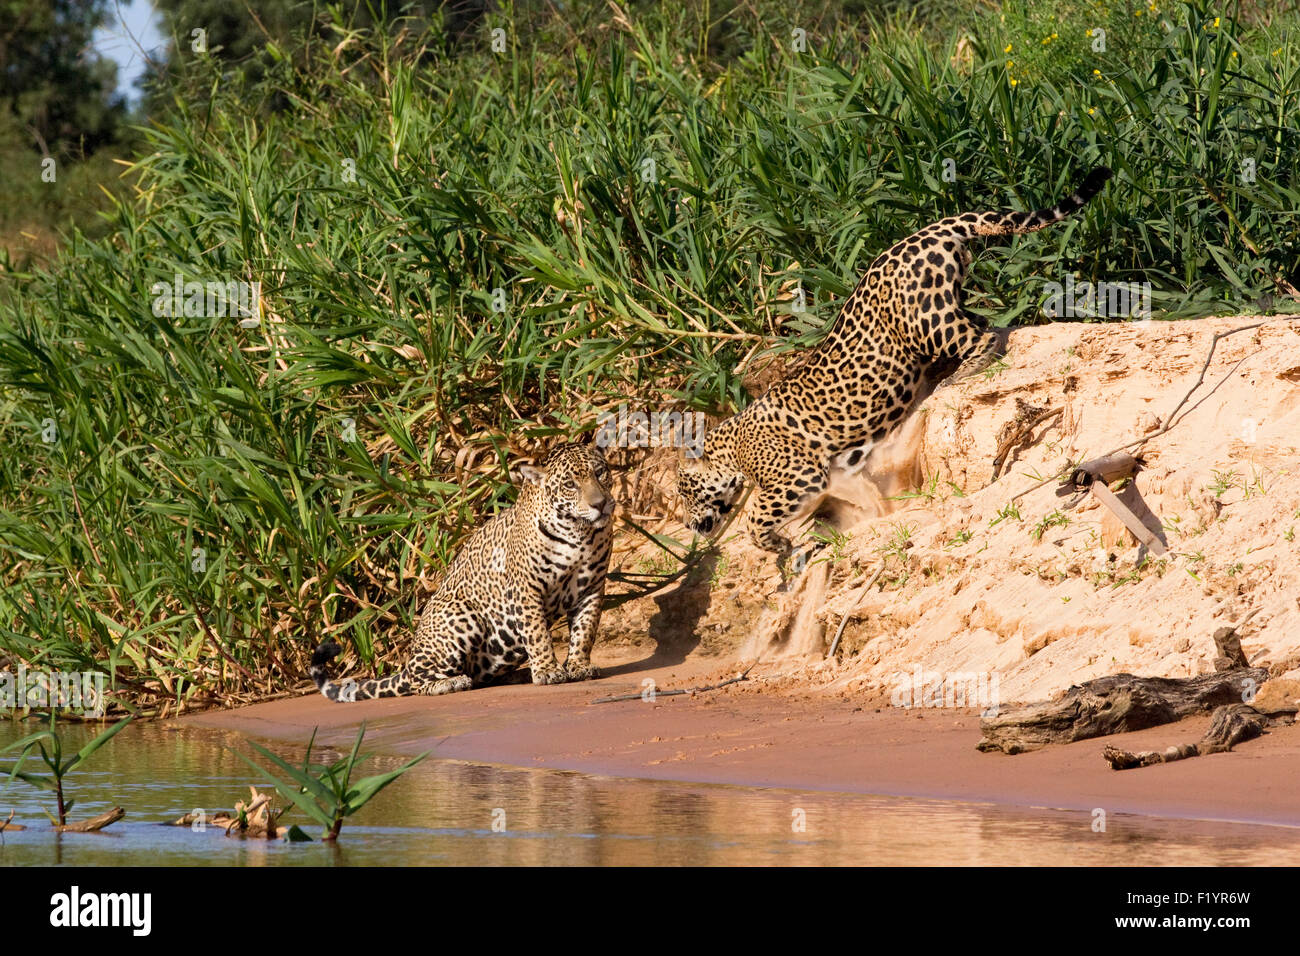 Jaguar (Panthera onca) Couple riverbank Pantanal Brazil - Stock Image